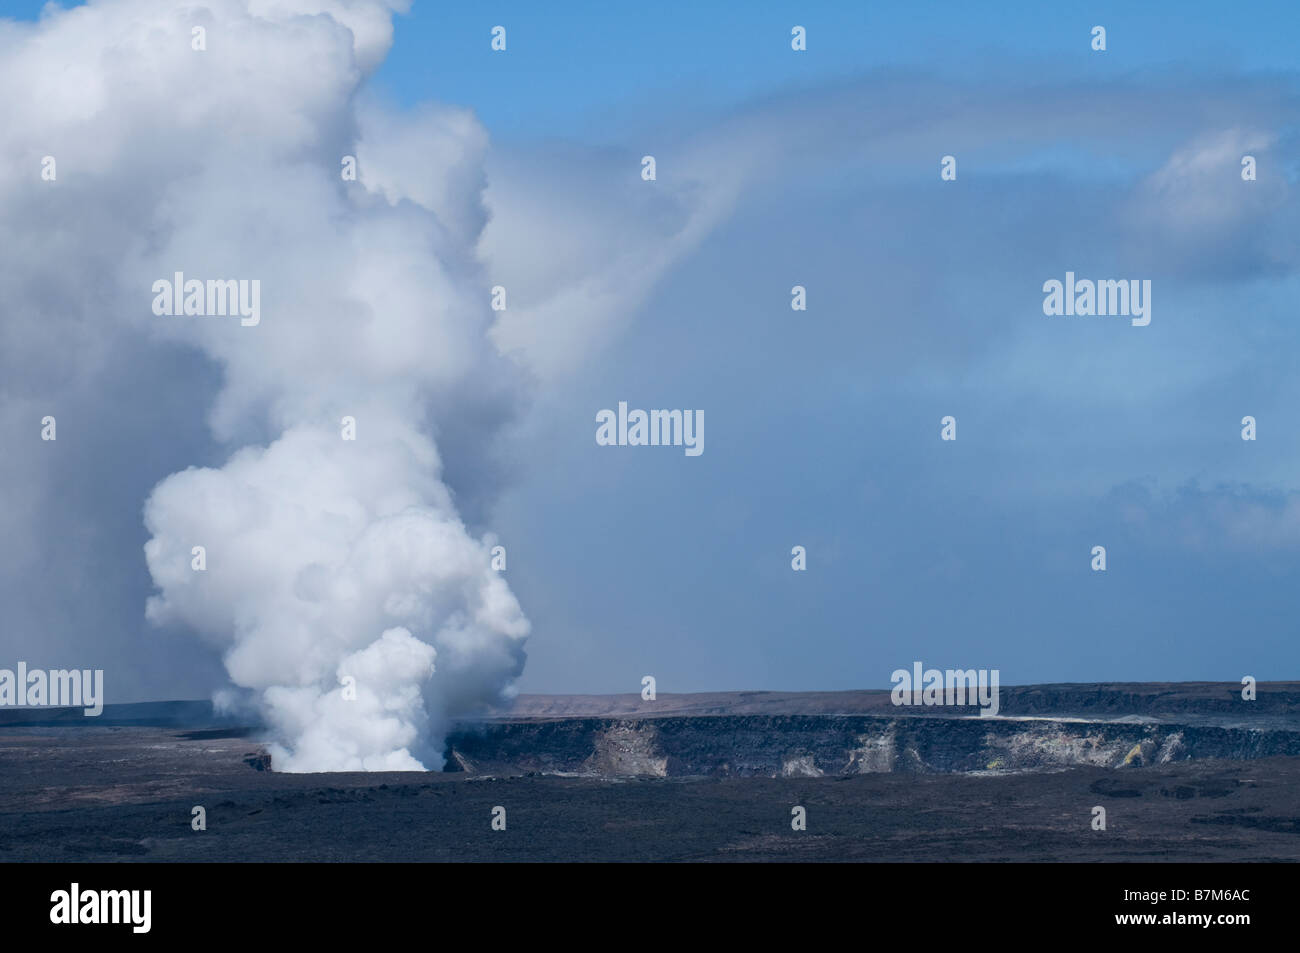 Volcano outgassing in Volcano National Park on the Big Island Hawaii. - Stock Image